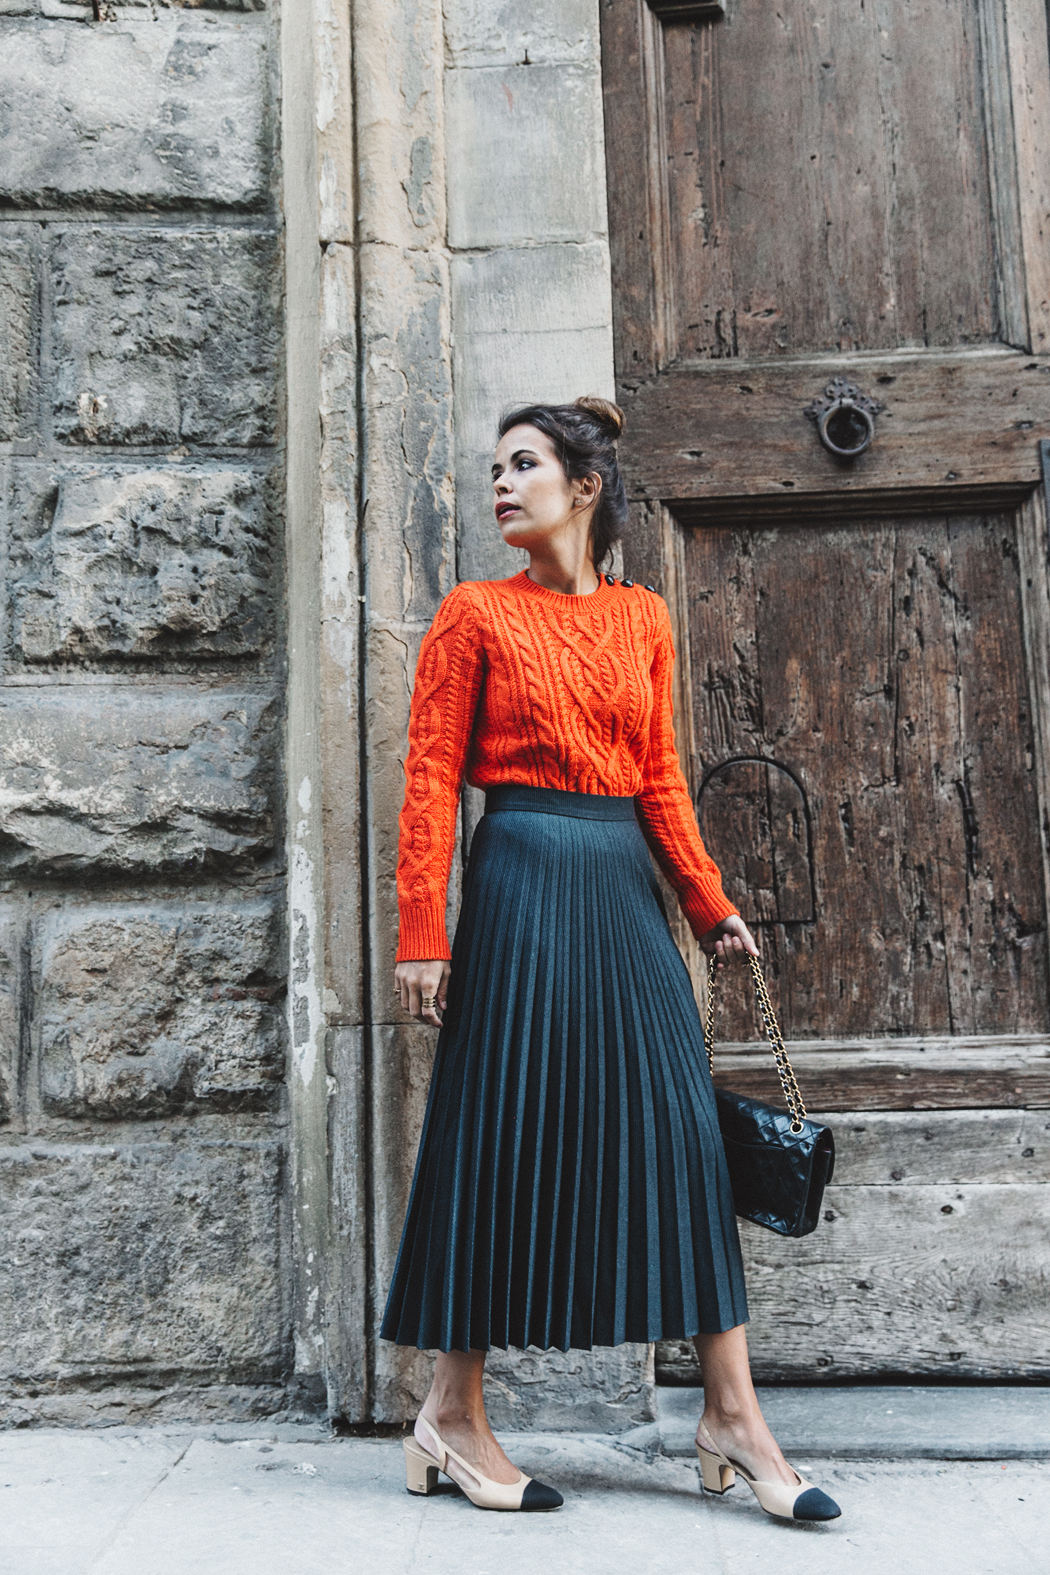 Orange_Sweater-Midi_Skirt-Slingback_Shoes_Chanel-Vintage_Bag-Florence-Outfit-Street_Style-15